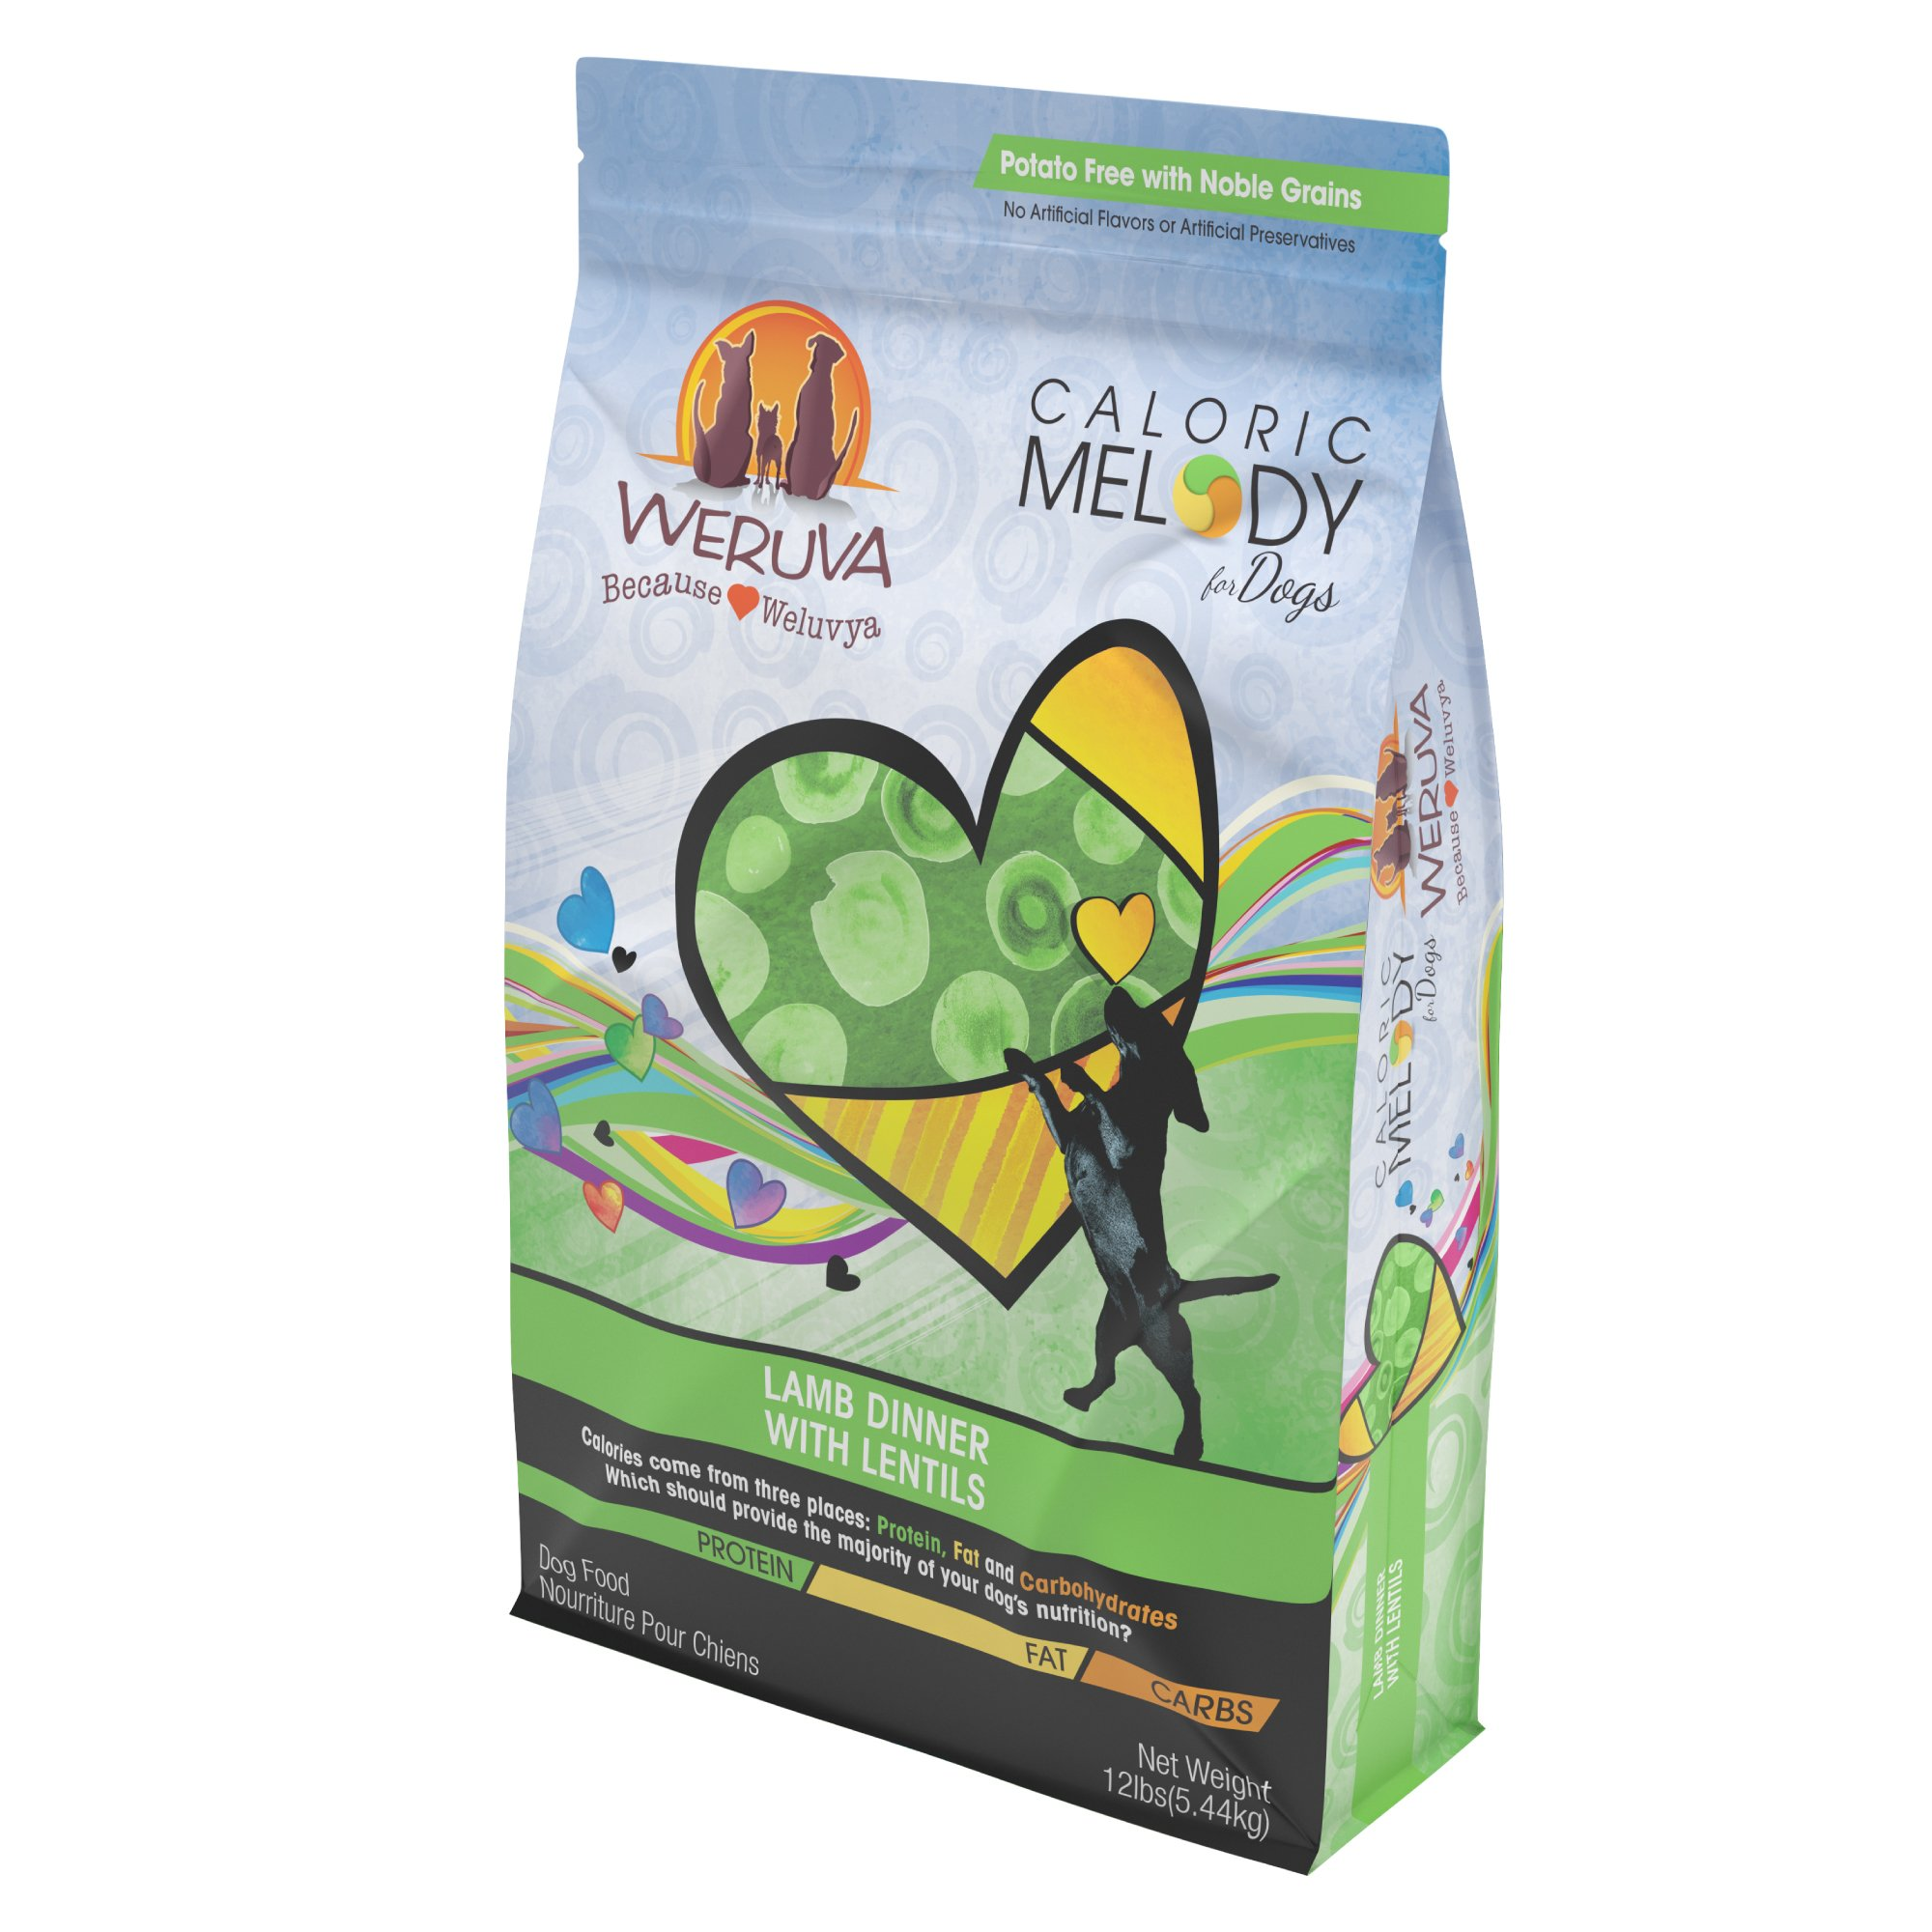 Weruva Caloric Melody Lamb Dinner With Lentils Dry Dog Food, 24 lbs.